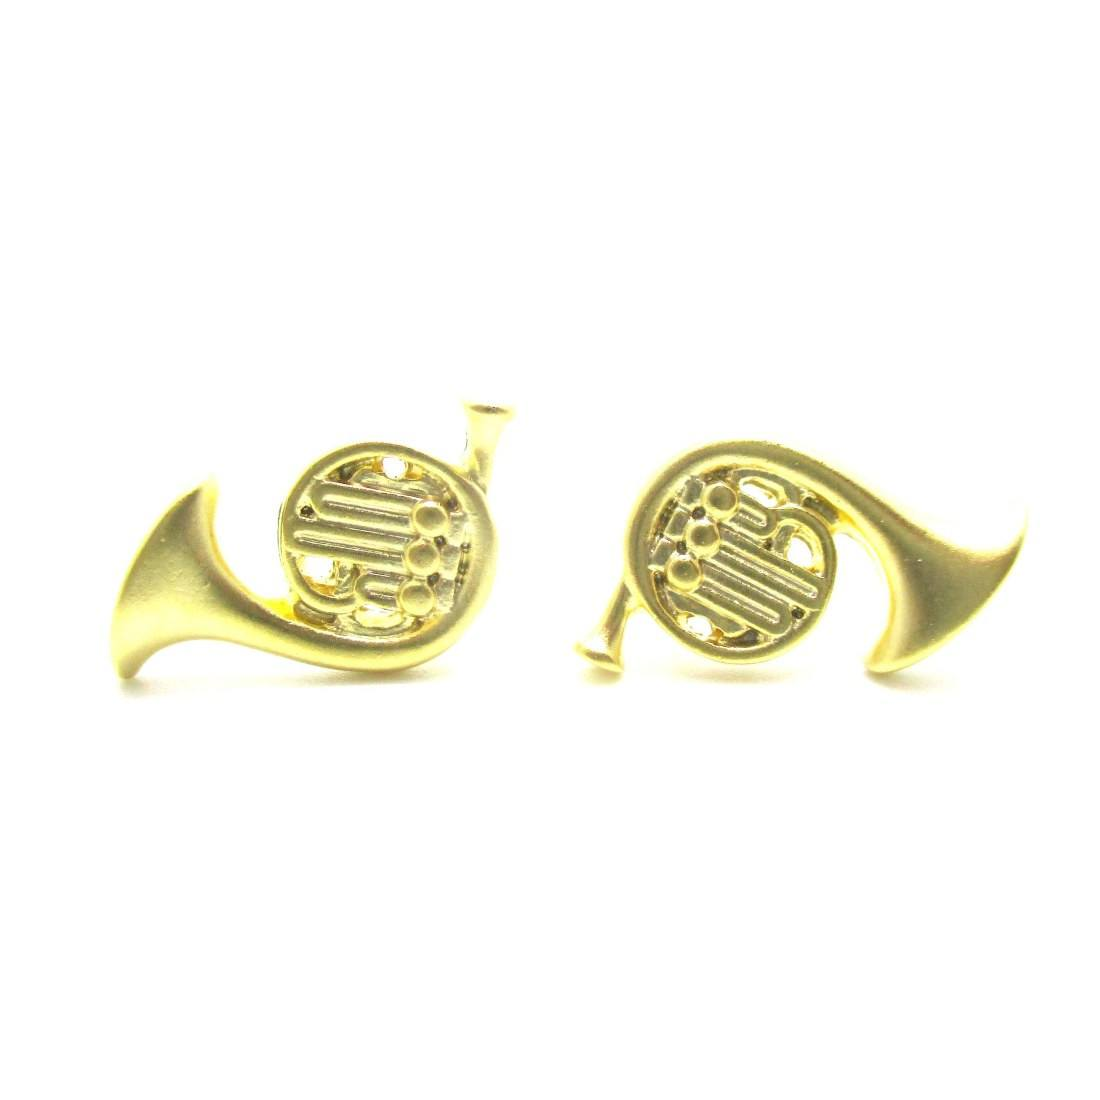 3D French Horn Shaped Stud Earrings in Gold | DOTOLY